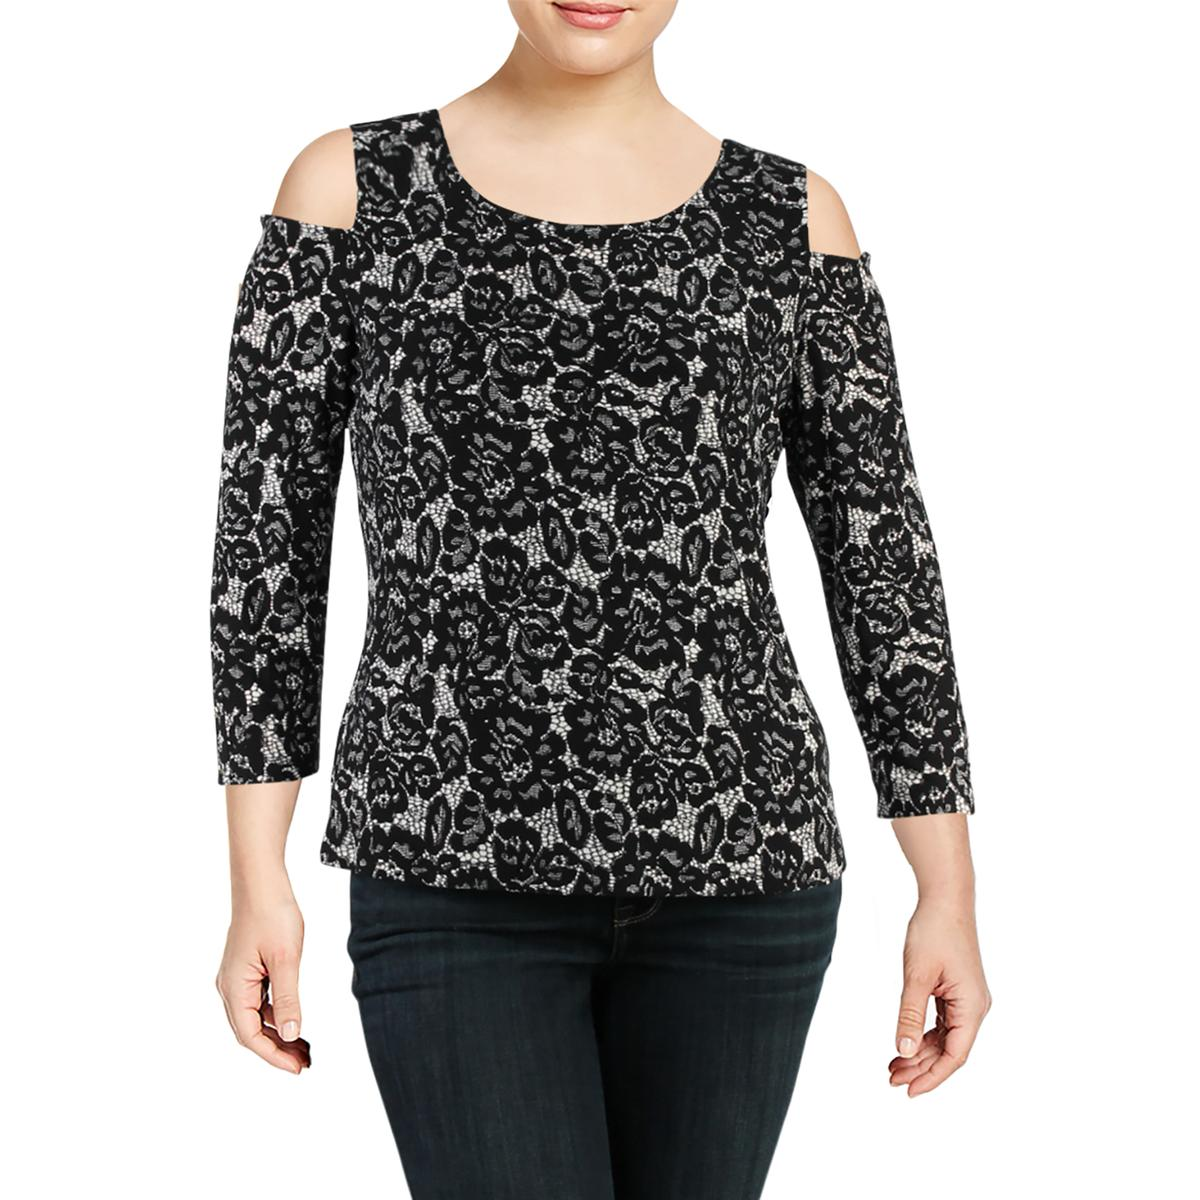 5b39ad3a840b9 Details about Tommy Hilfiger Womens Cold Shoulder Lace Casual Casual Top  Shirt BHFO 9983